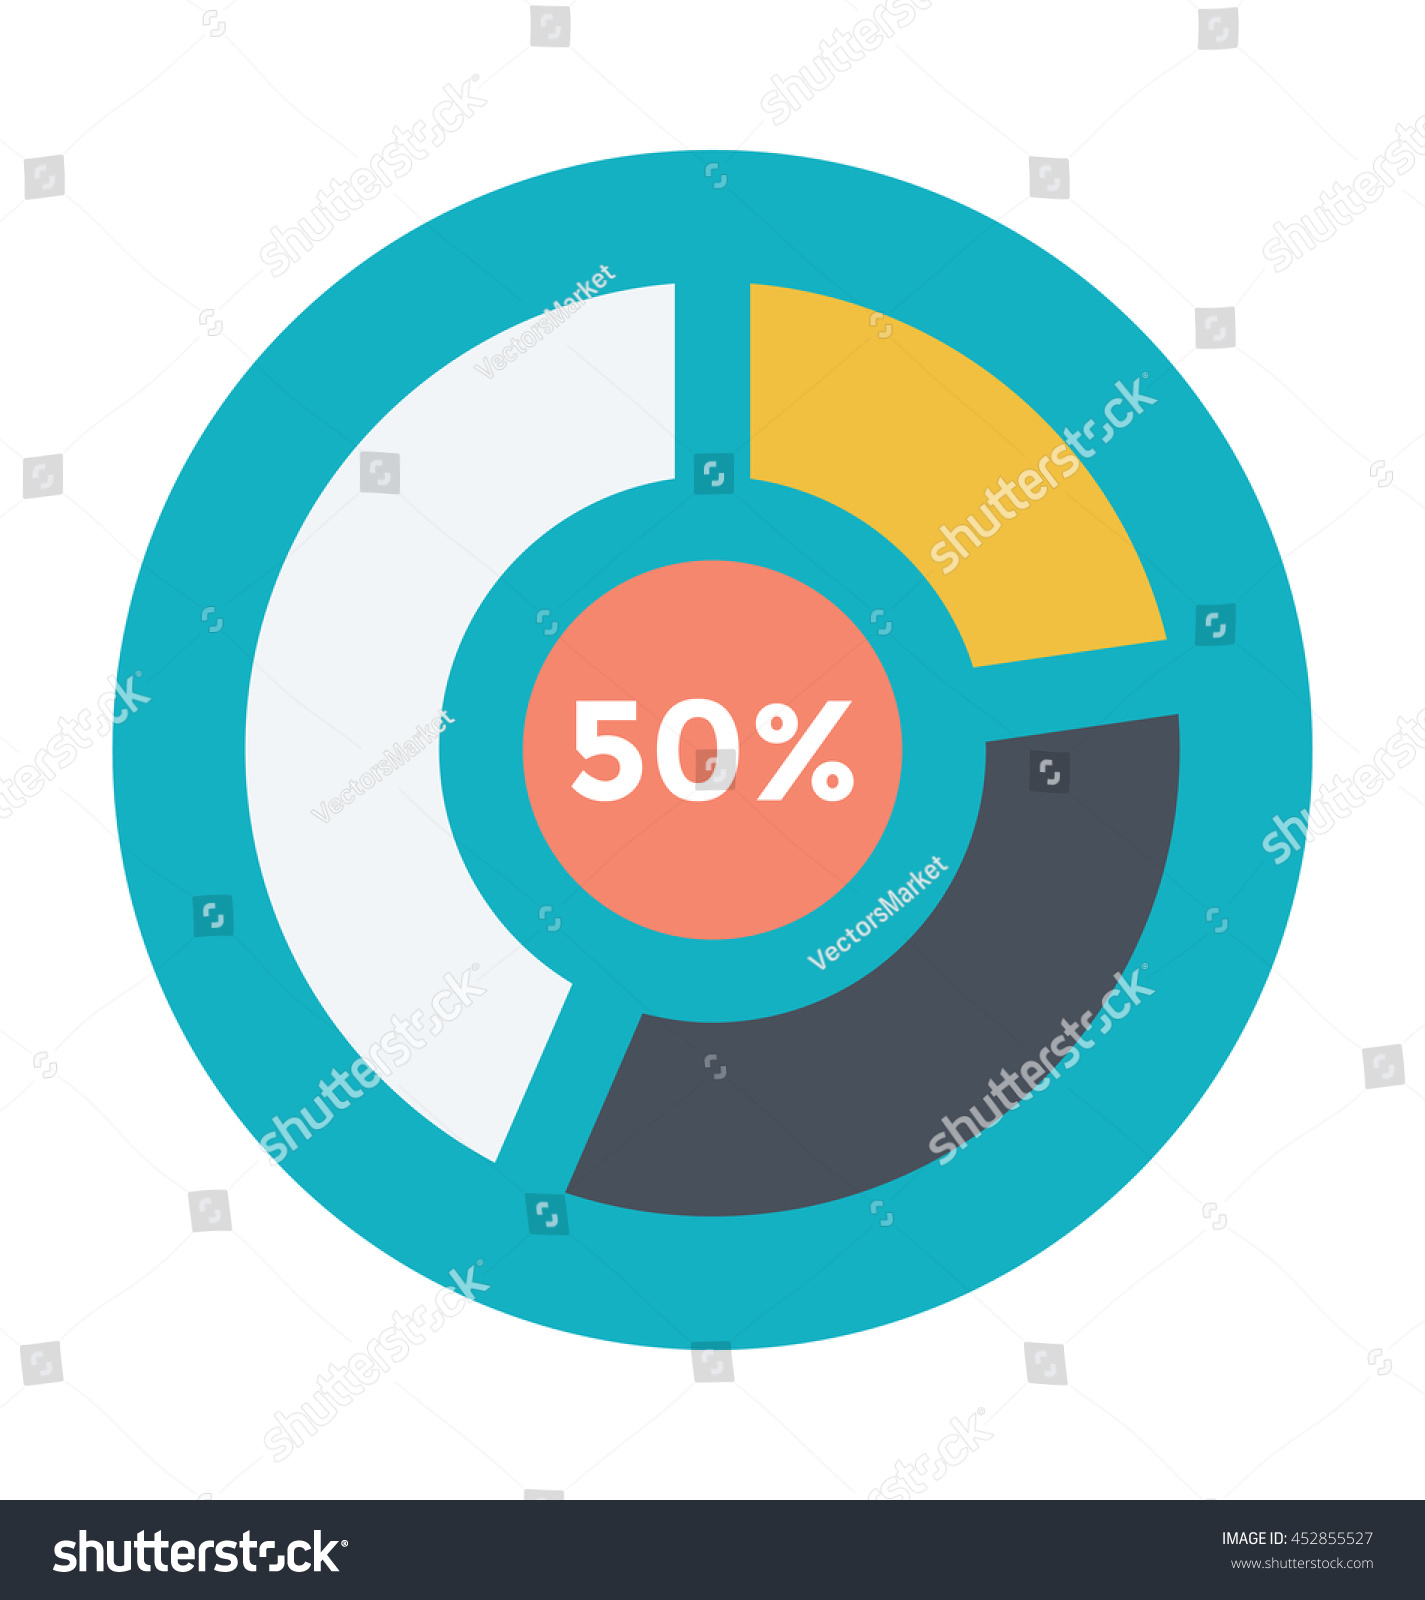 Jquery animated pie chart images free any chart examples jquery animated pie chart image collections free any chart examples jquery pie chart animation image collections nvjuhfo Images